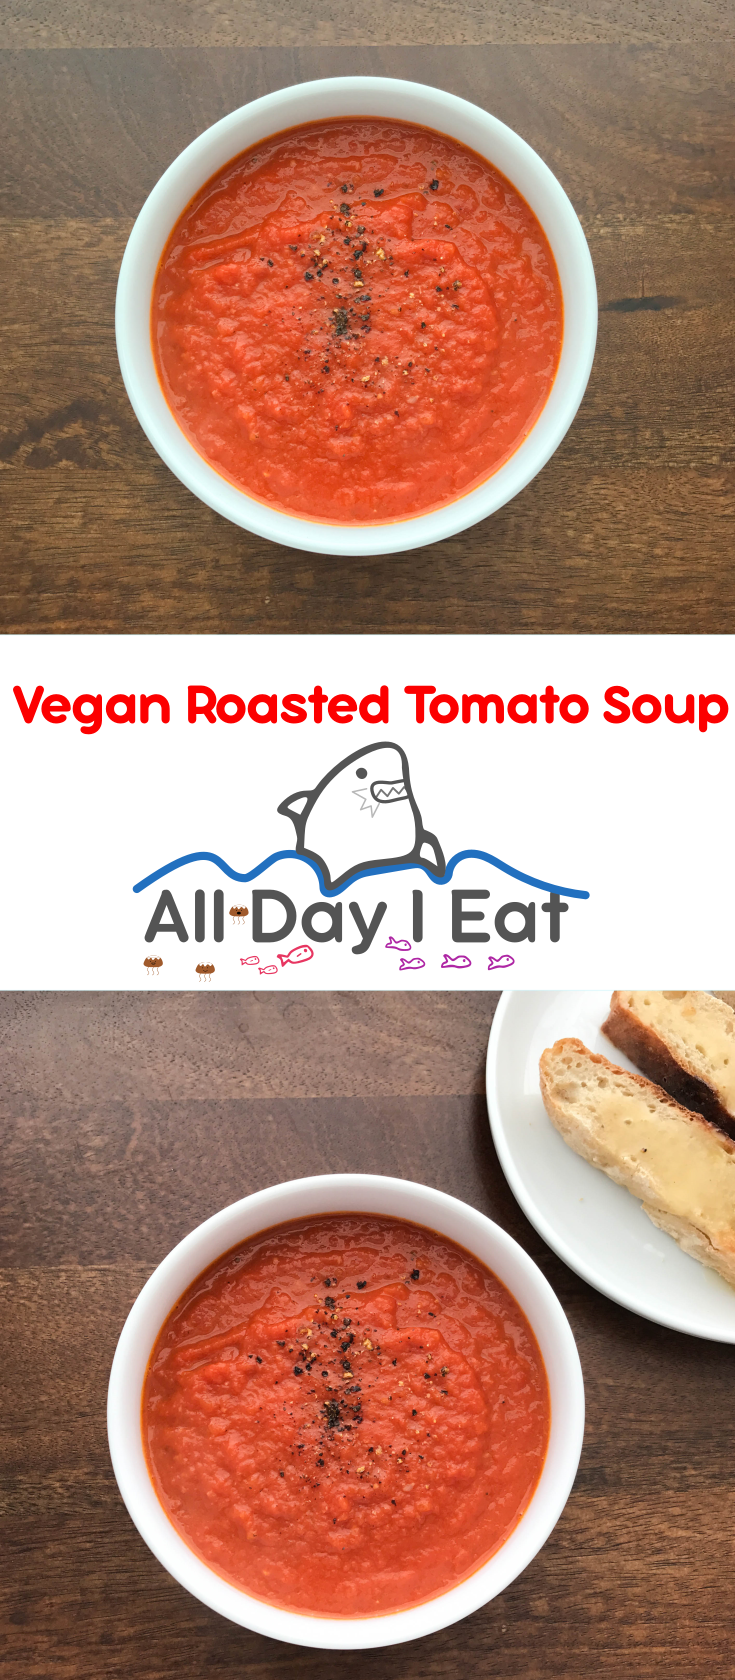 Vegan Roasted Tomato Soup | www.alldayieat.com